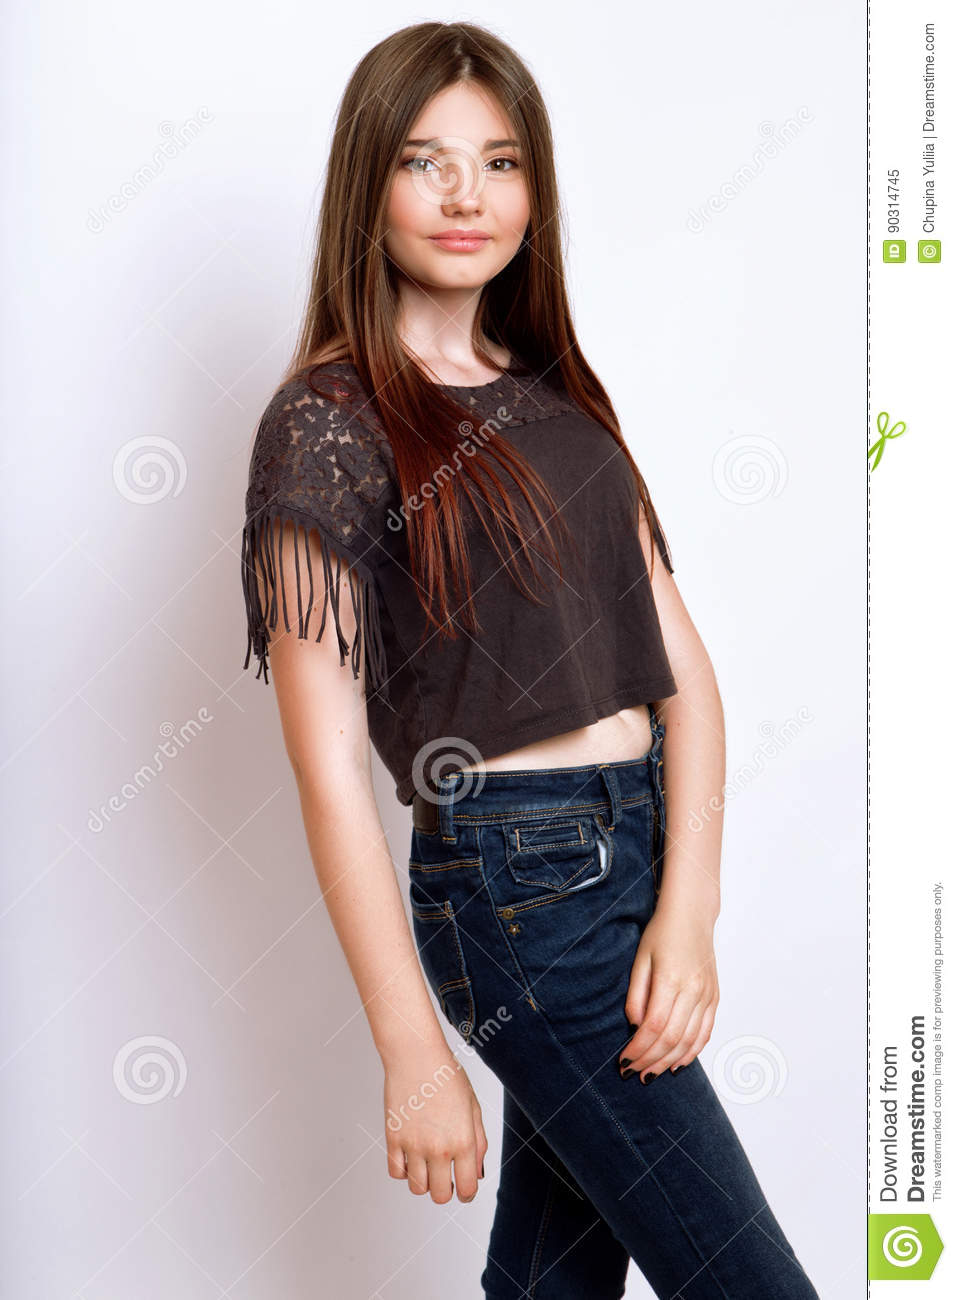 A Beautiful 13-years Old Girl Stock Image